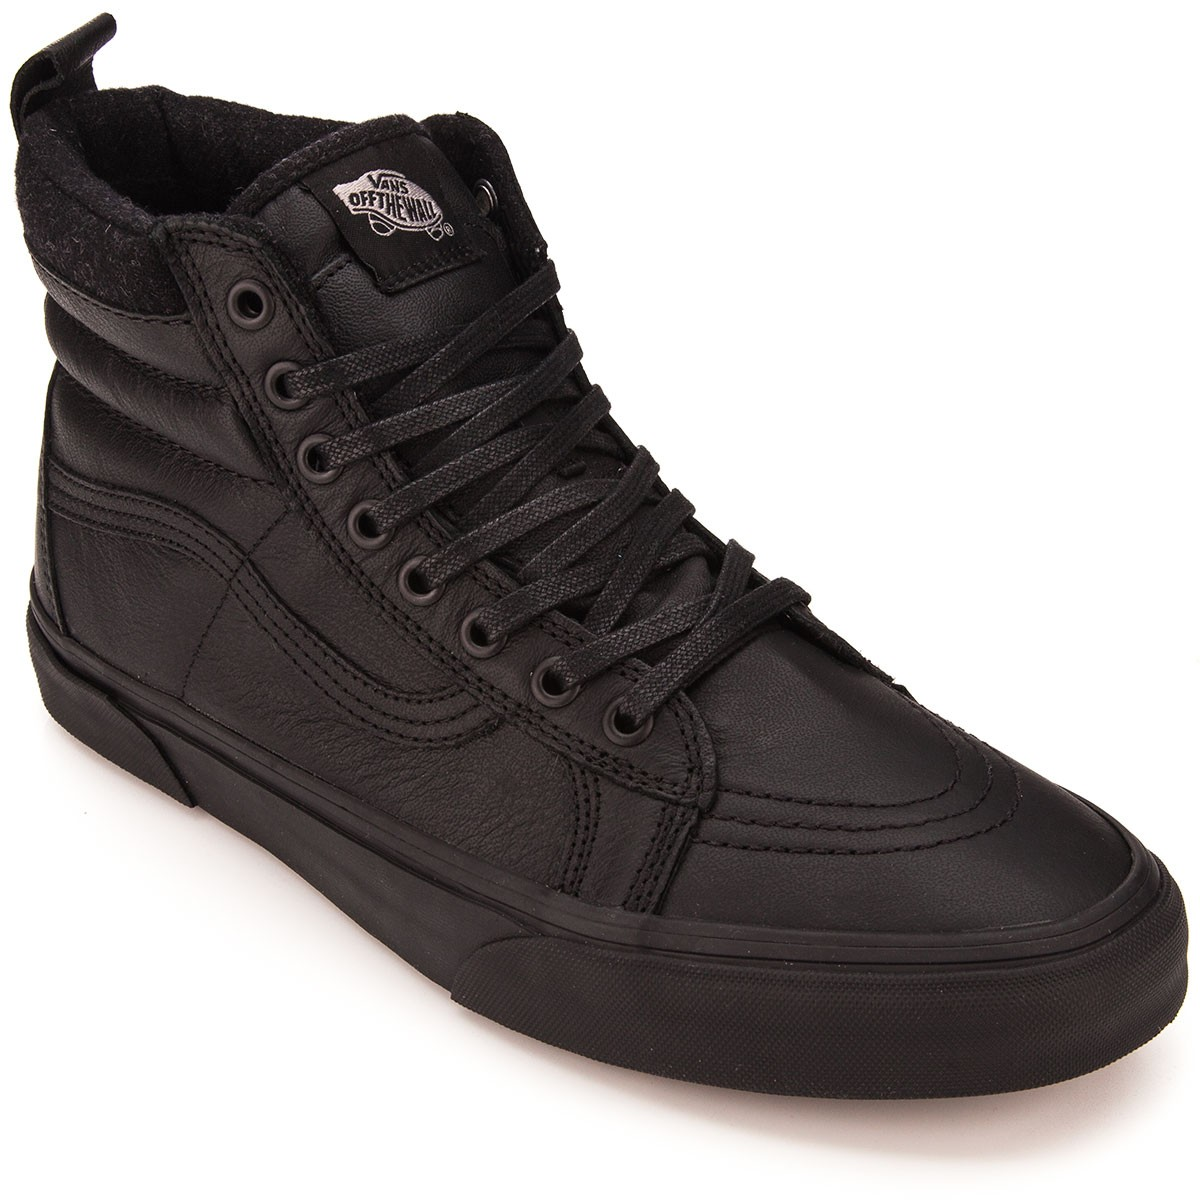 Vans SK8 Hi MTE Shoes Black 10